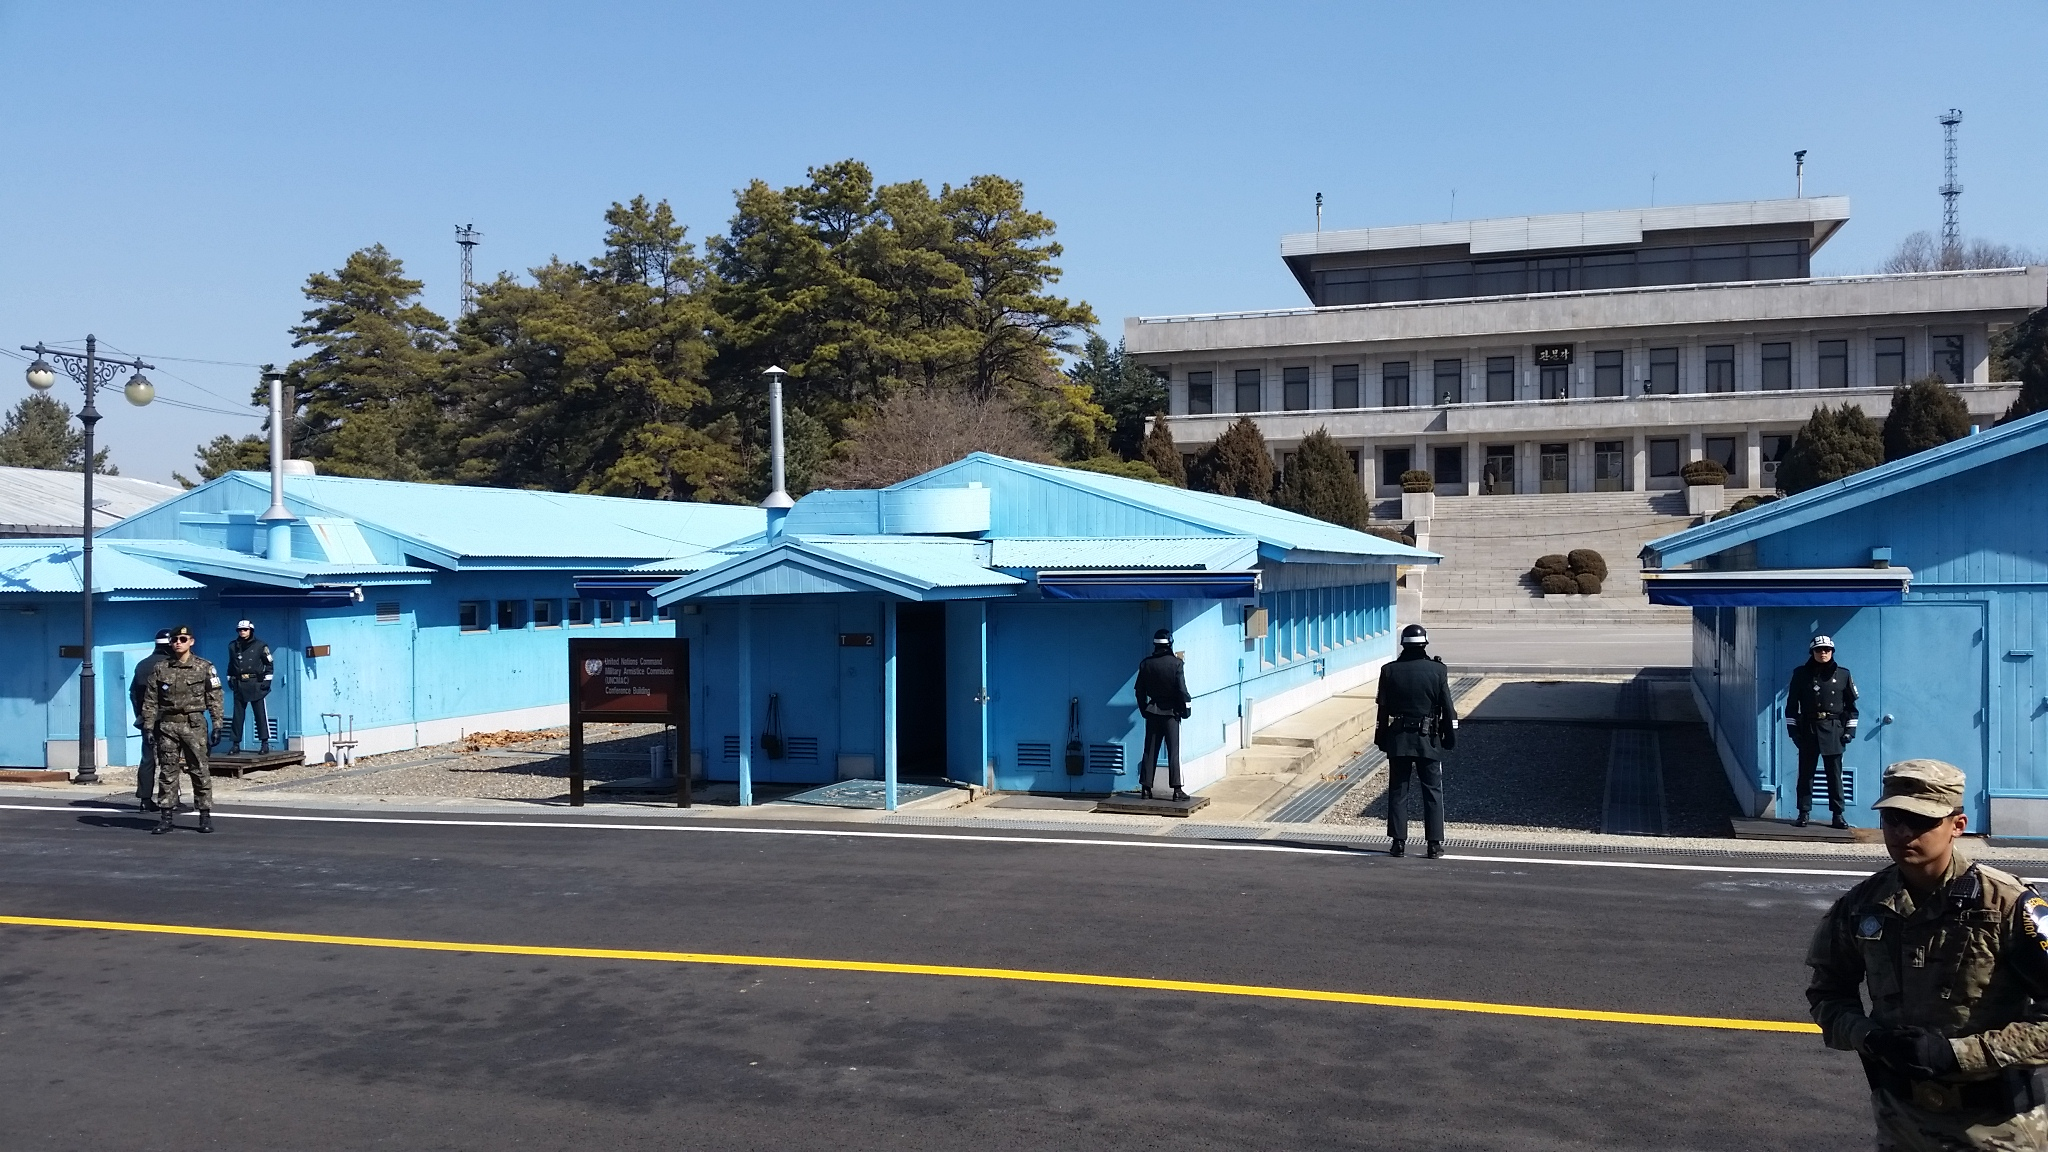 Building T-2, centered, at Panmunjom. Buildings T-1, T-2, and T-3 are visible in the picture as blue buildings in the foreground. In the background is North Korea's large building at Panmunjom.